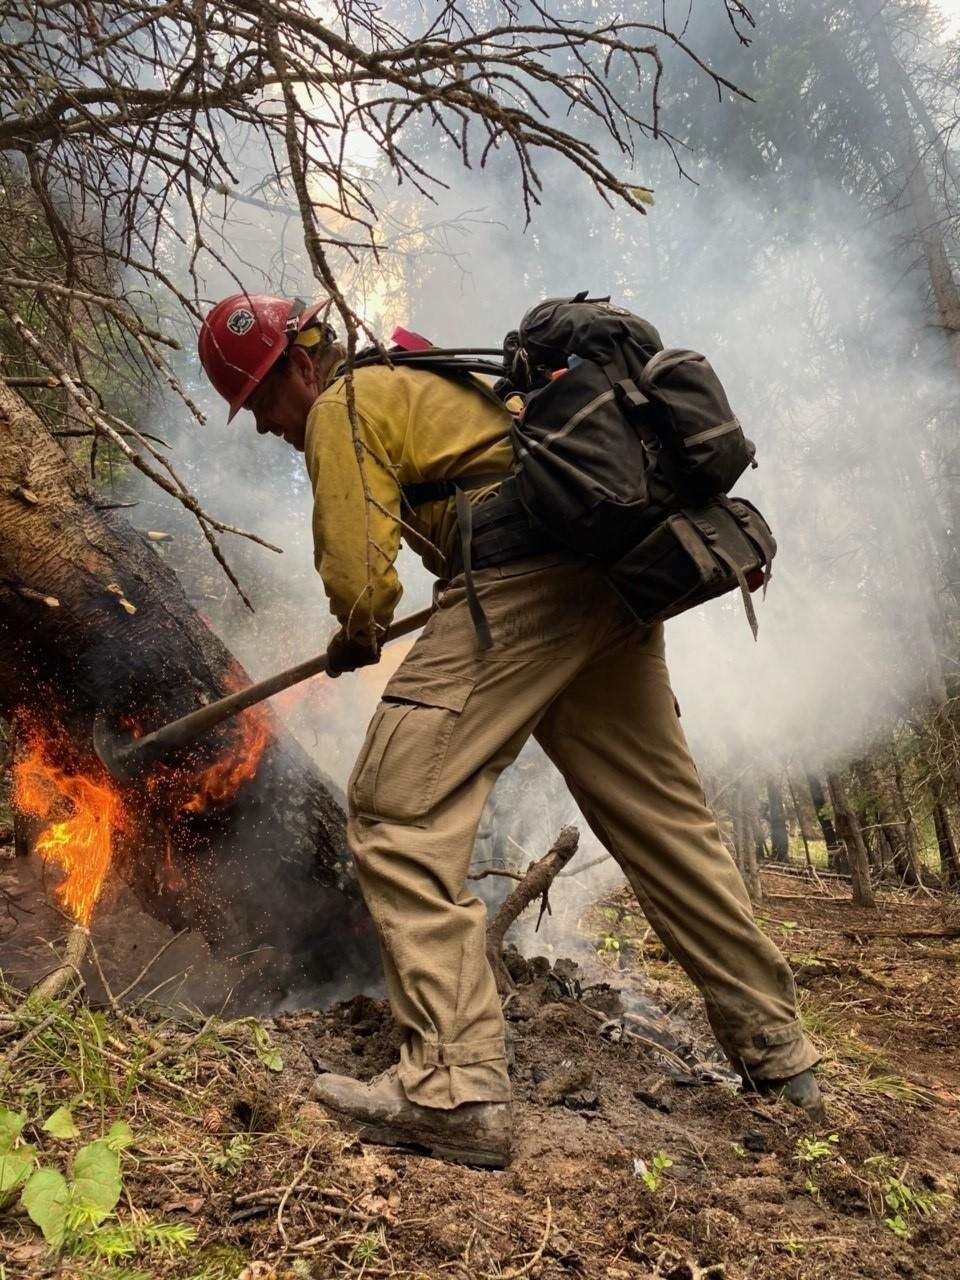 a firefighter tries to extinguish fire at base of tree